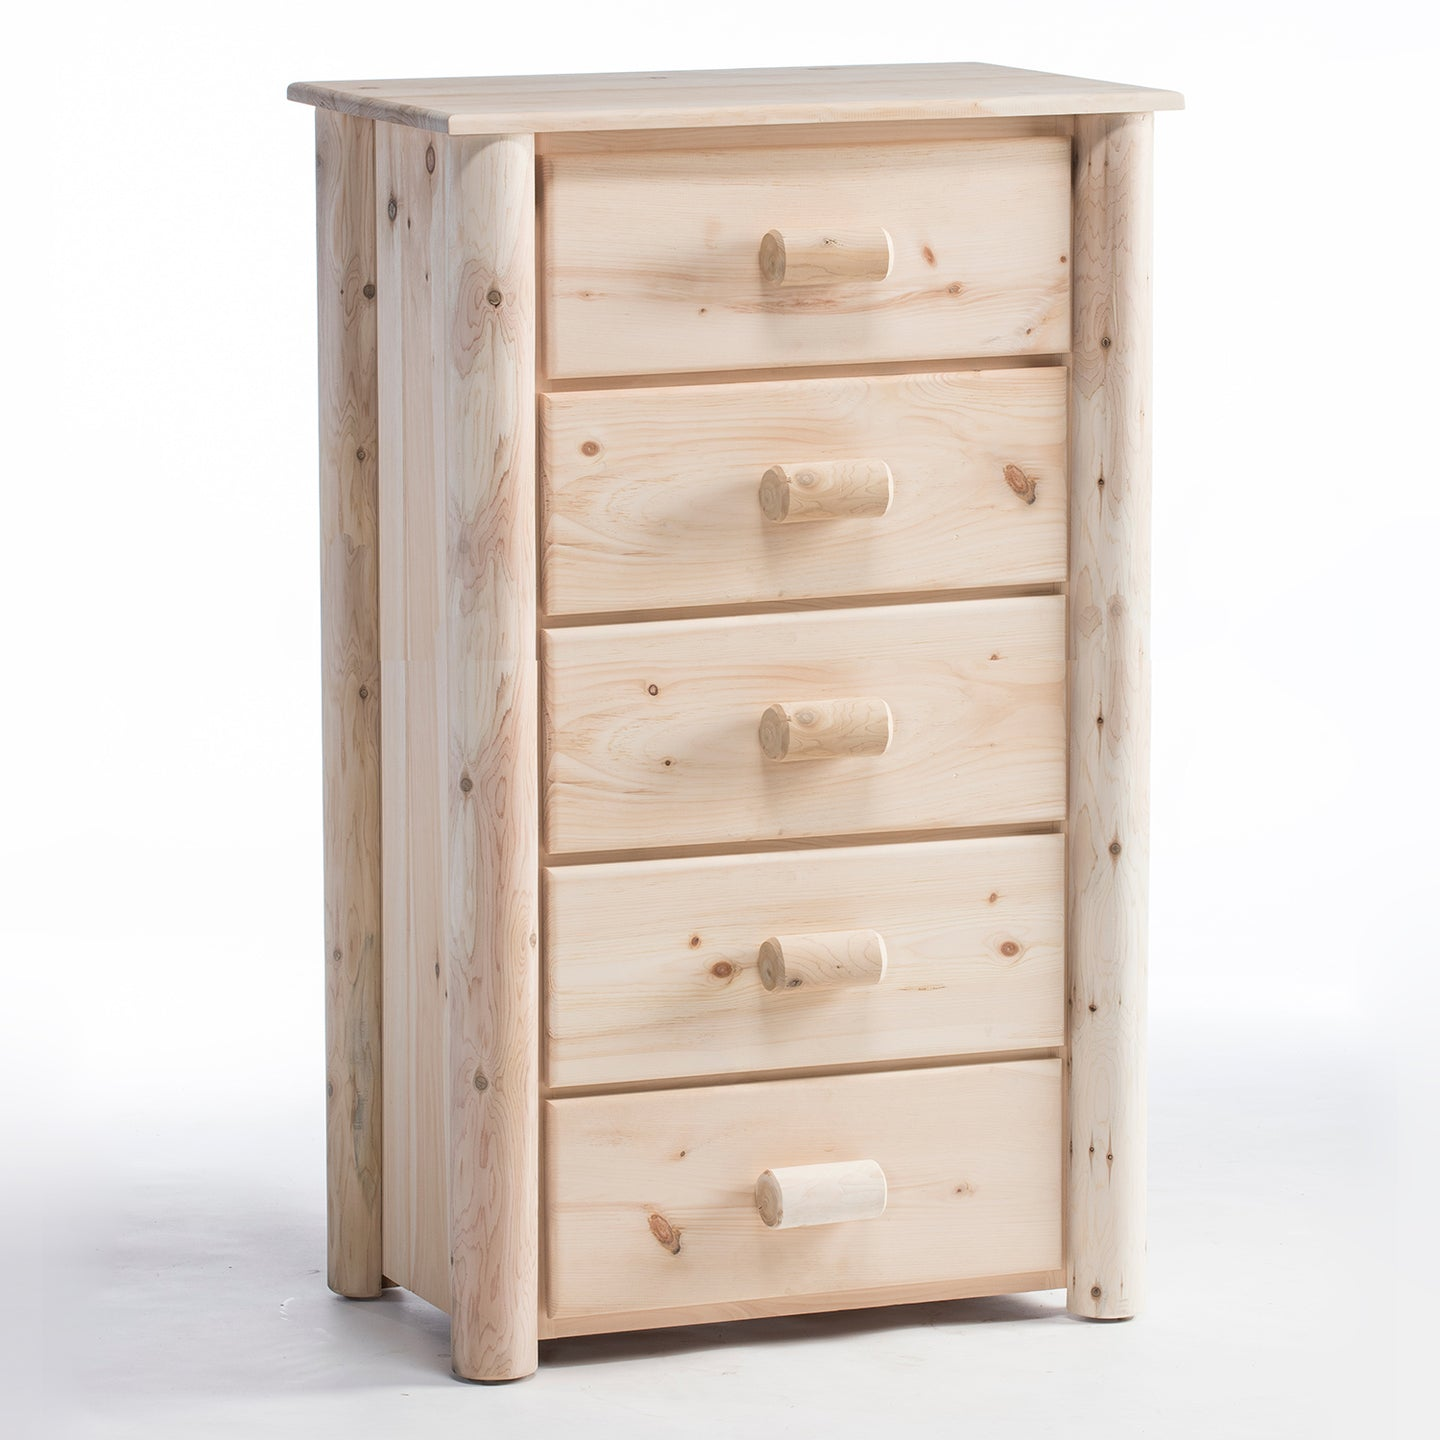 Lakeland Mills Frontier 5 Drawer Chest/Choice of Finish